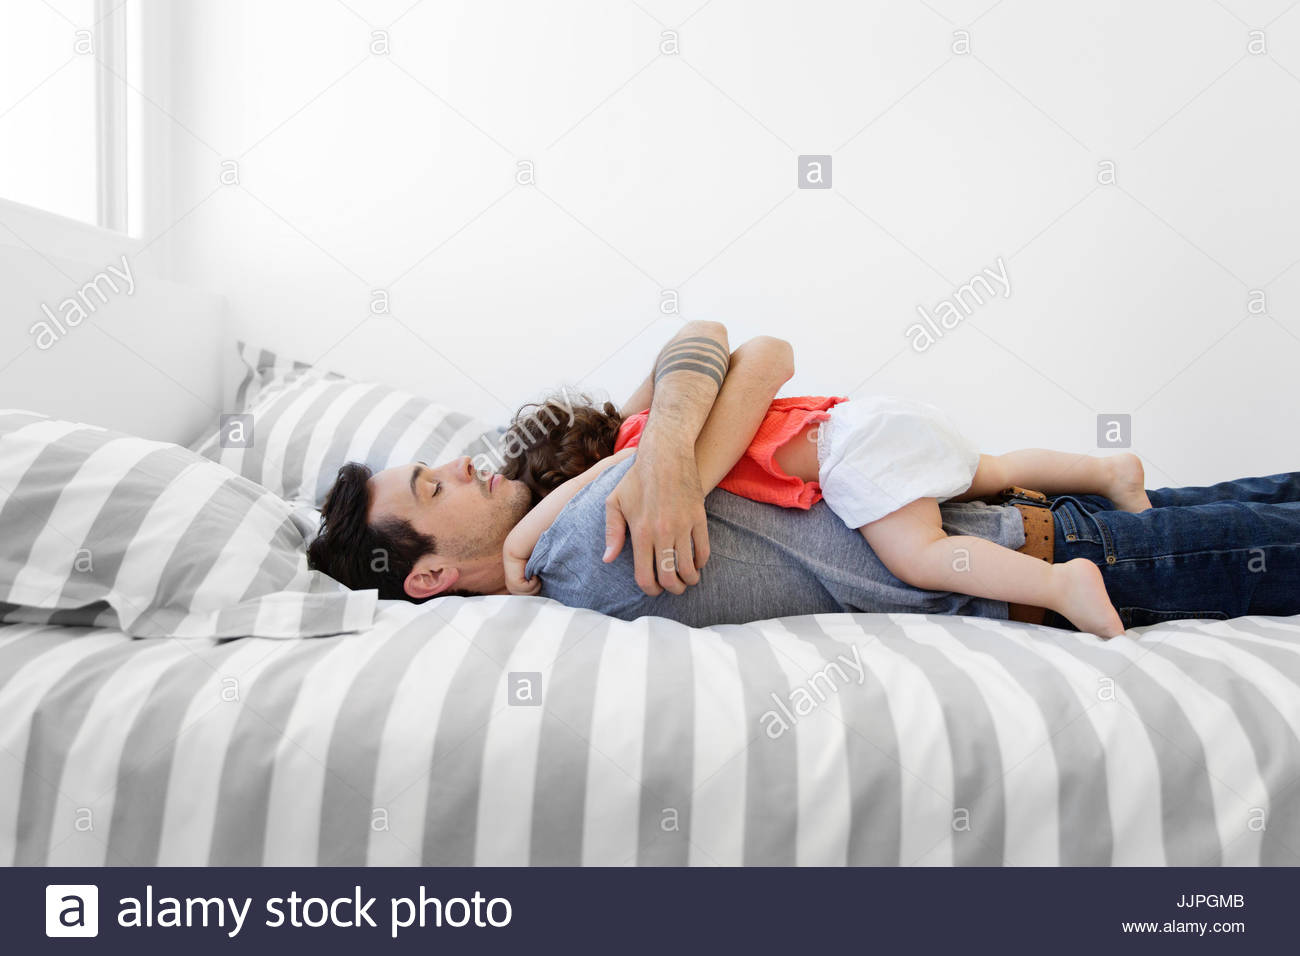 Man wearing grey T-shirt and jeans lying on bed with stripy duvet, hugging baby girl in red dress. - Stock Image